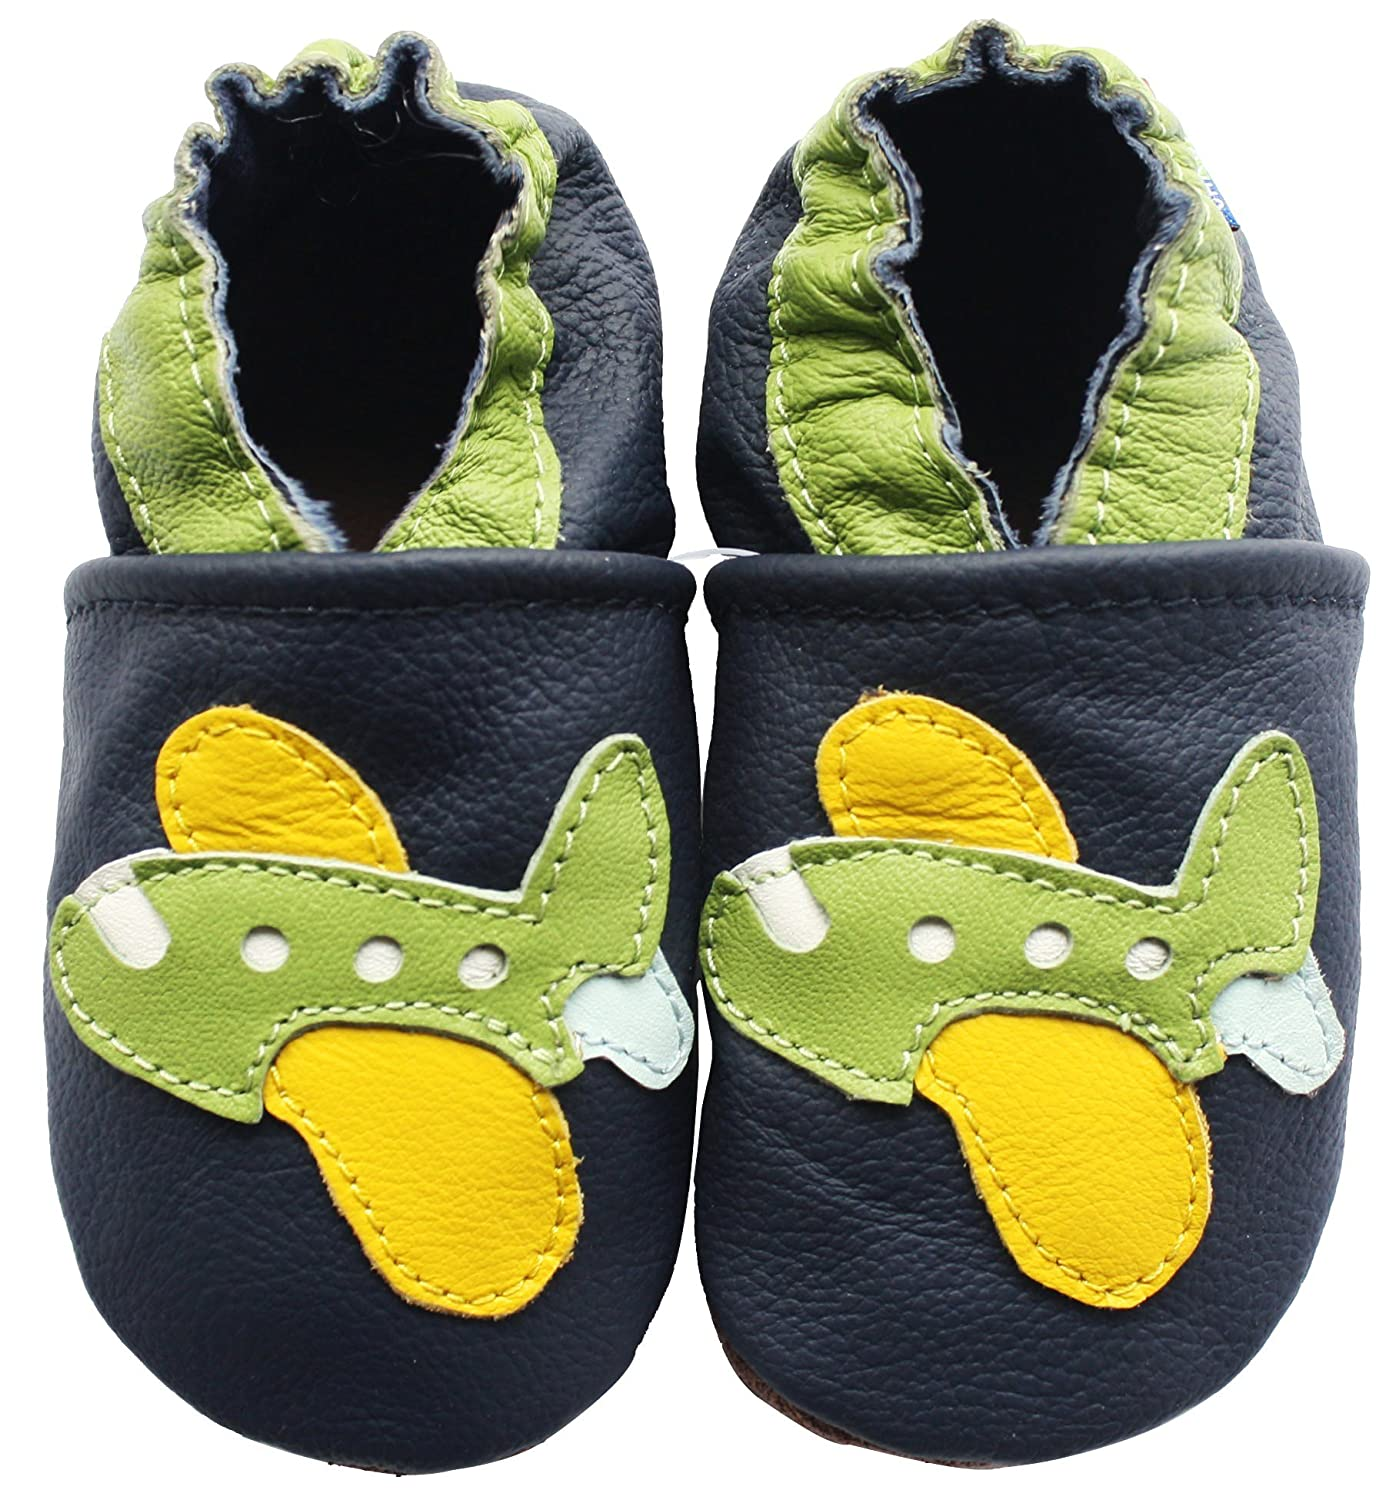 Carozoo Baby Shoes Leather Soft Sole Prewalker Slippers Socks Toddler Kids Shoes (16 Designs)